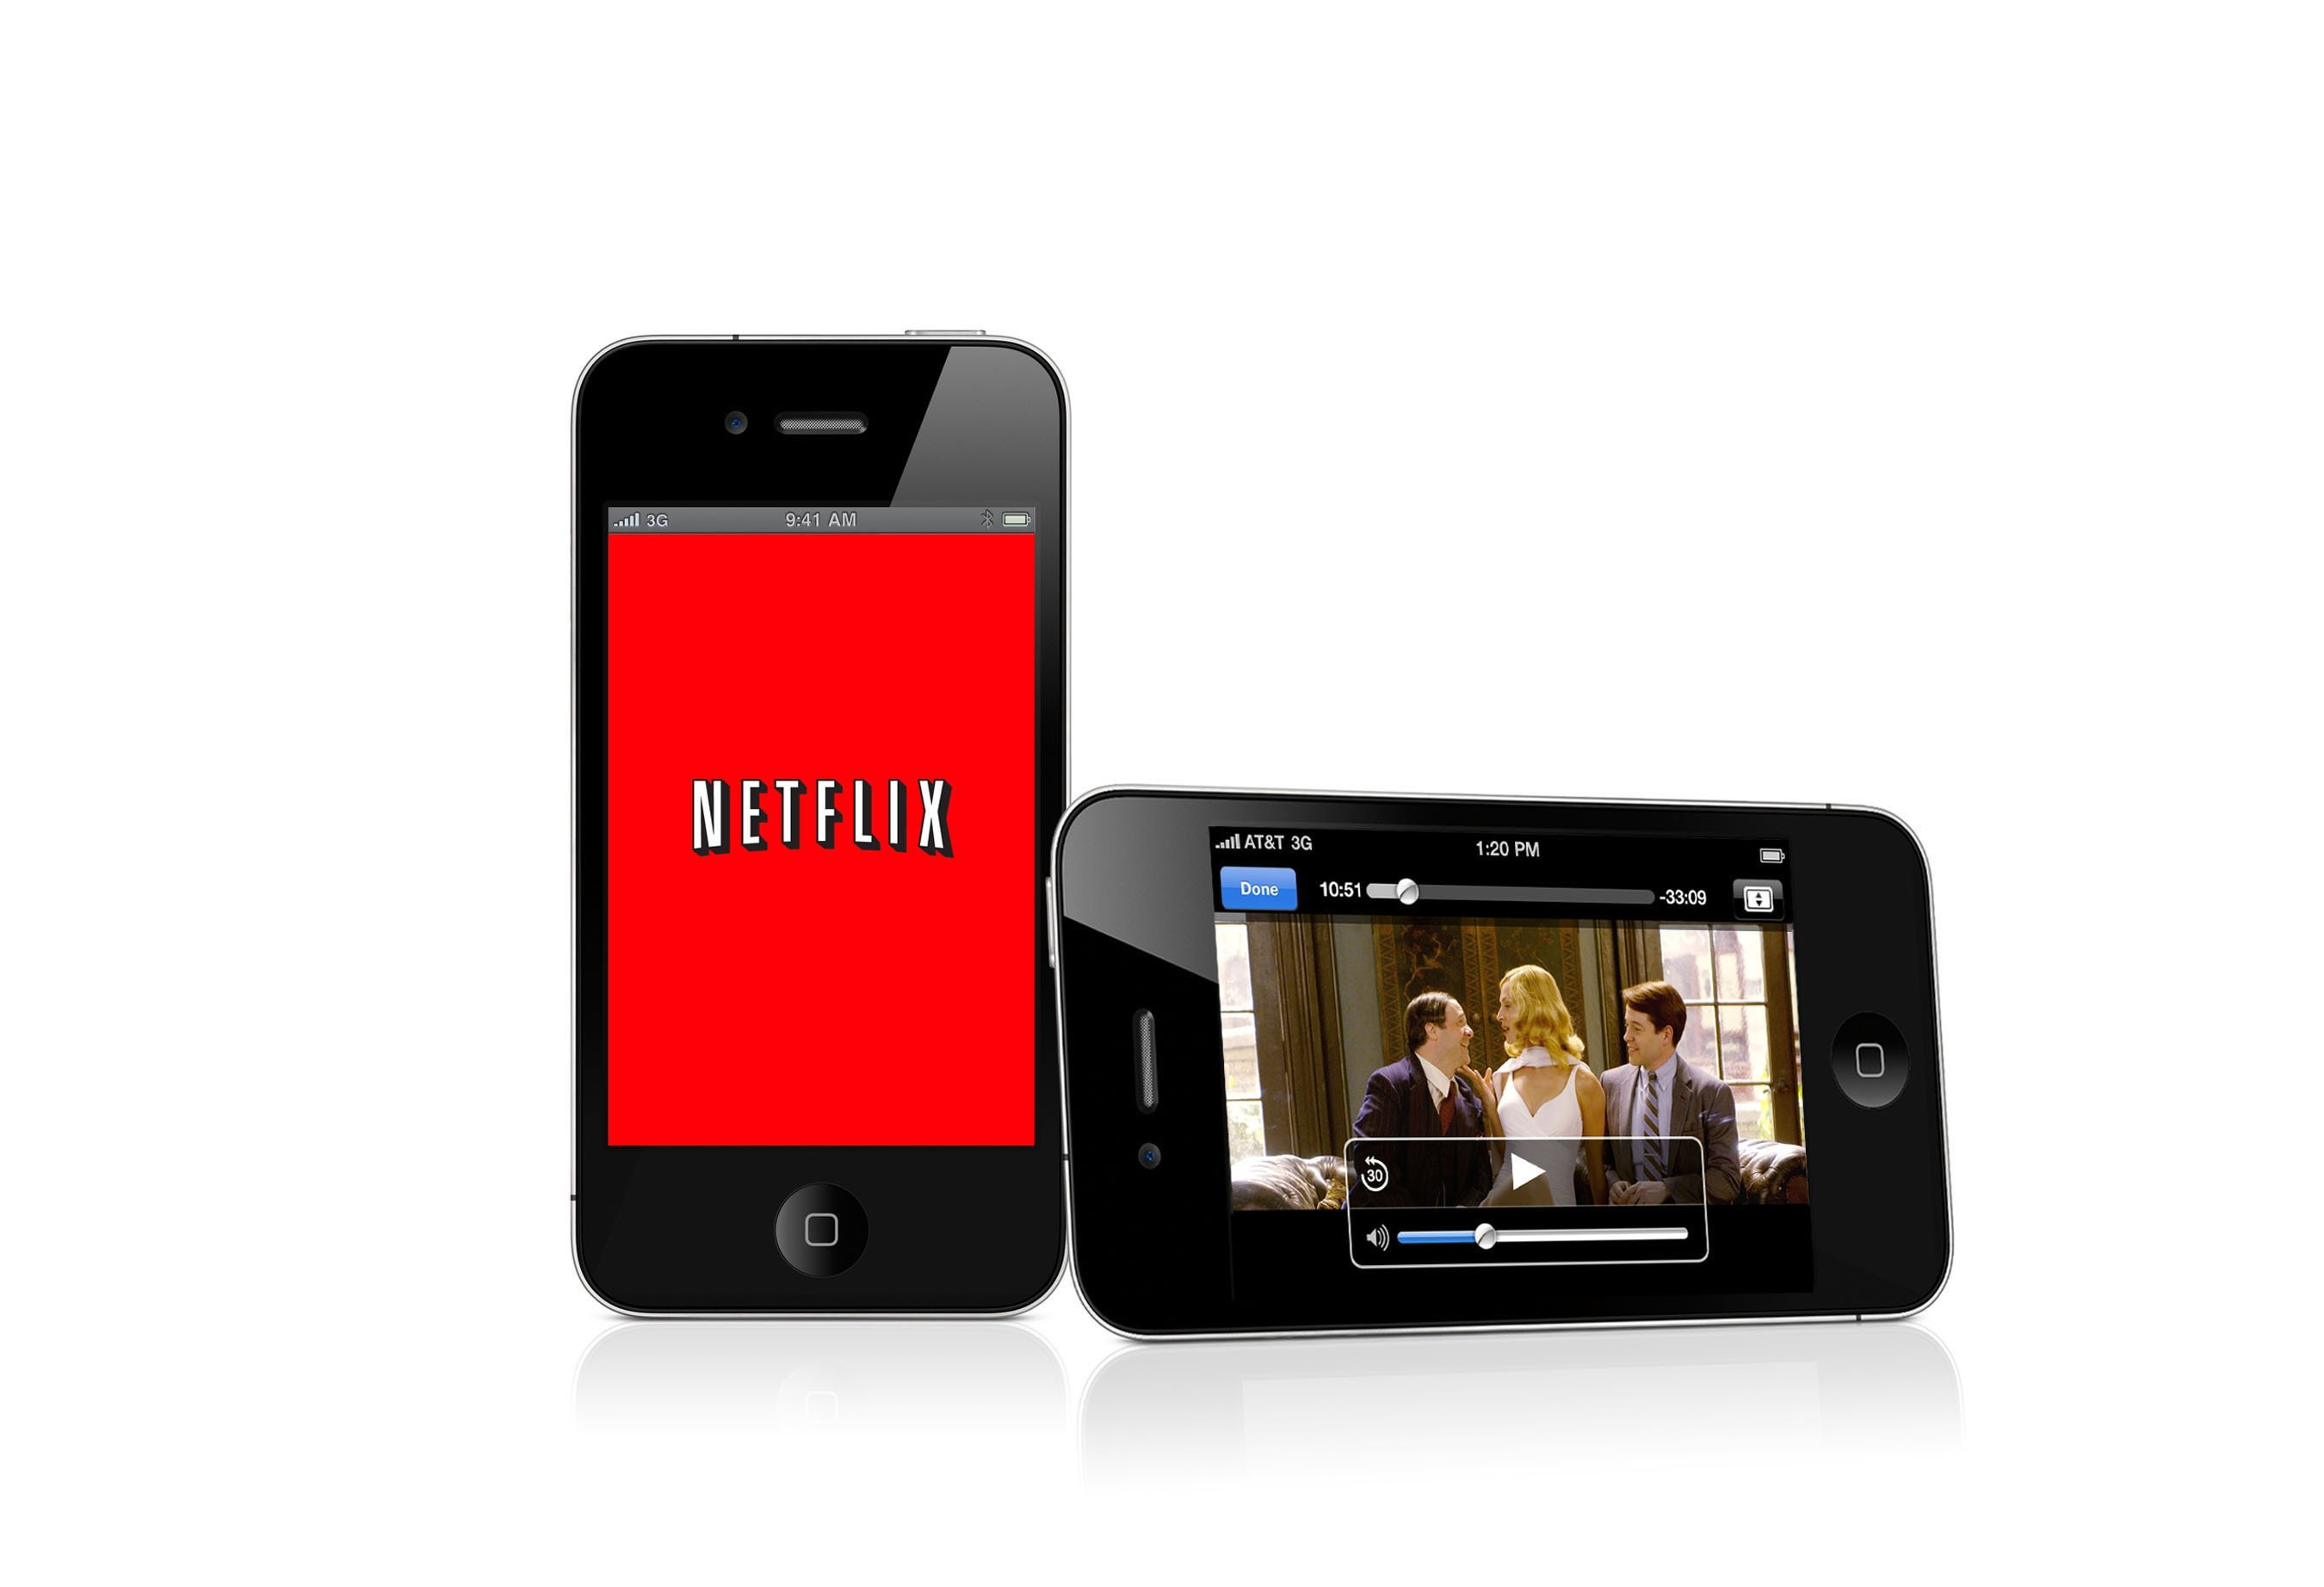 NETFLIX MOVIE ON APPLE IPHONE